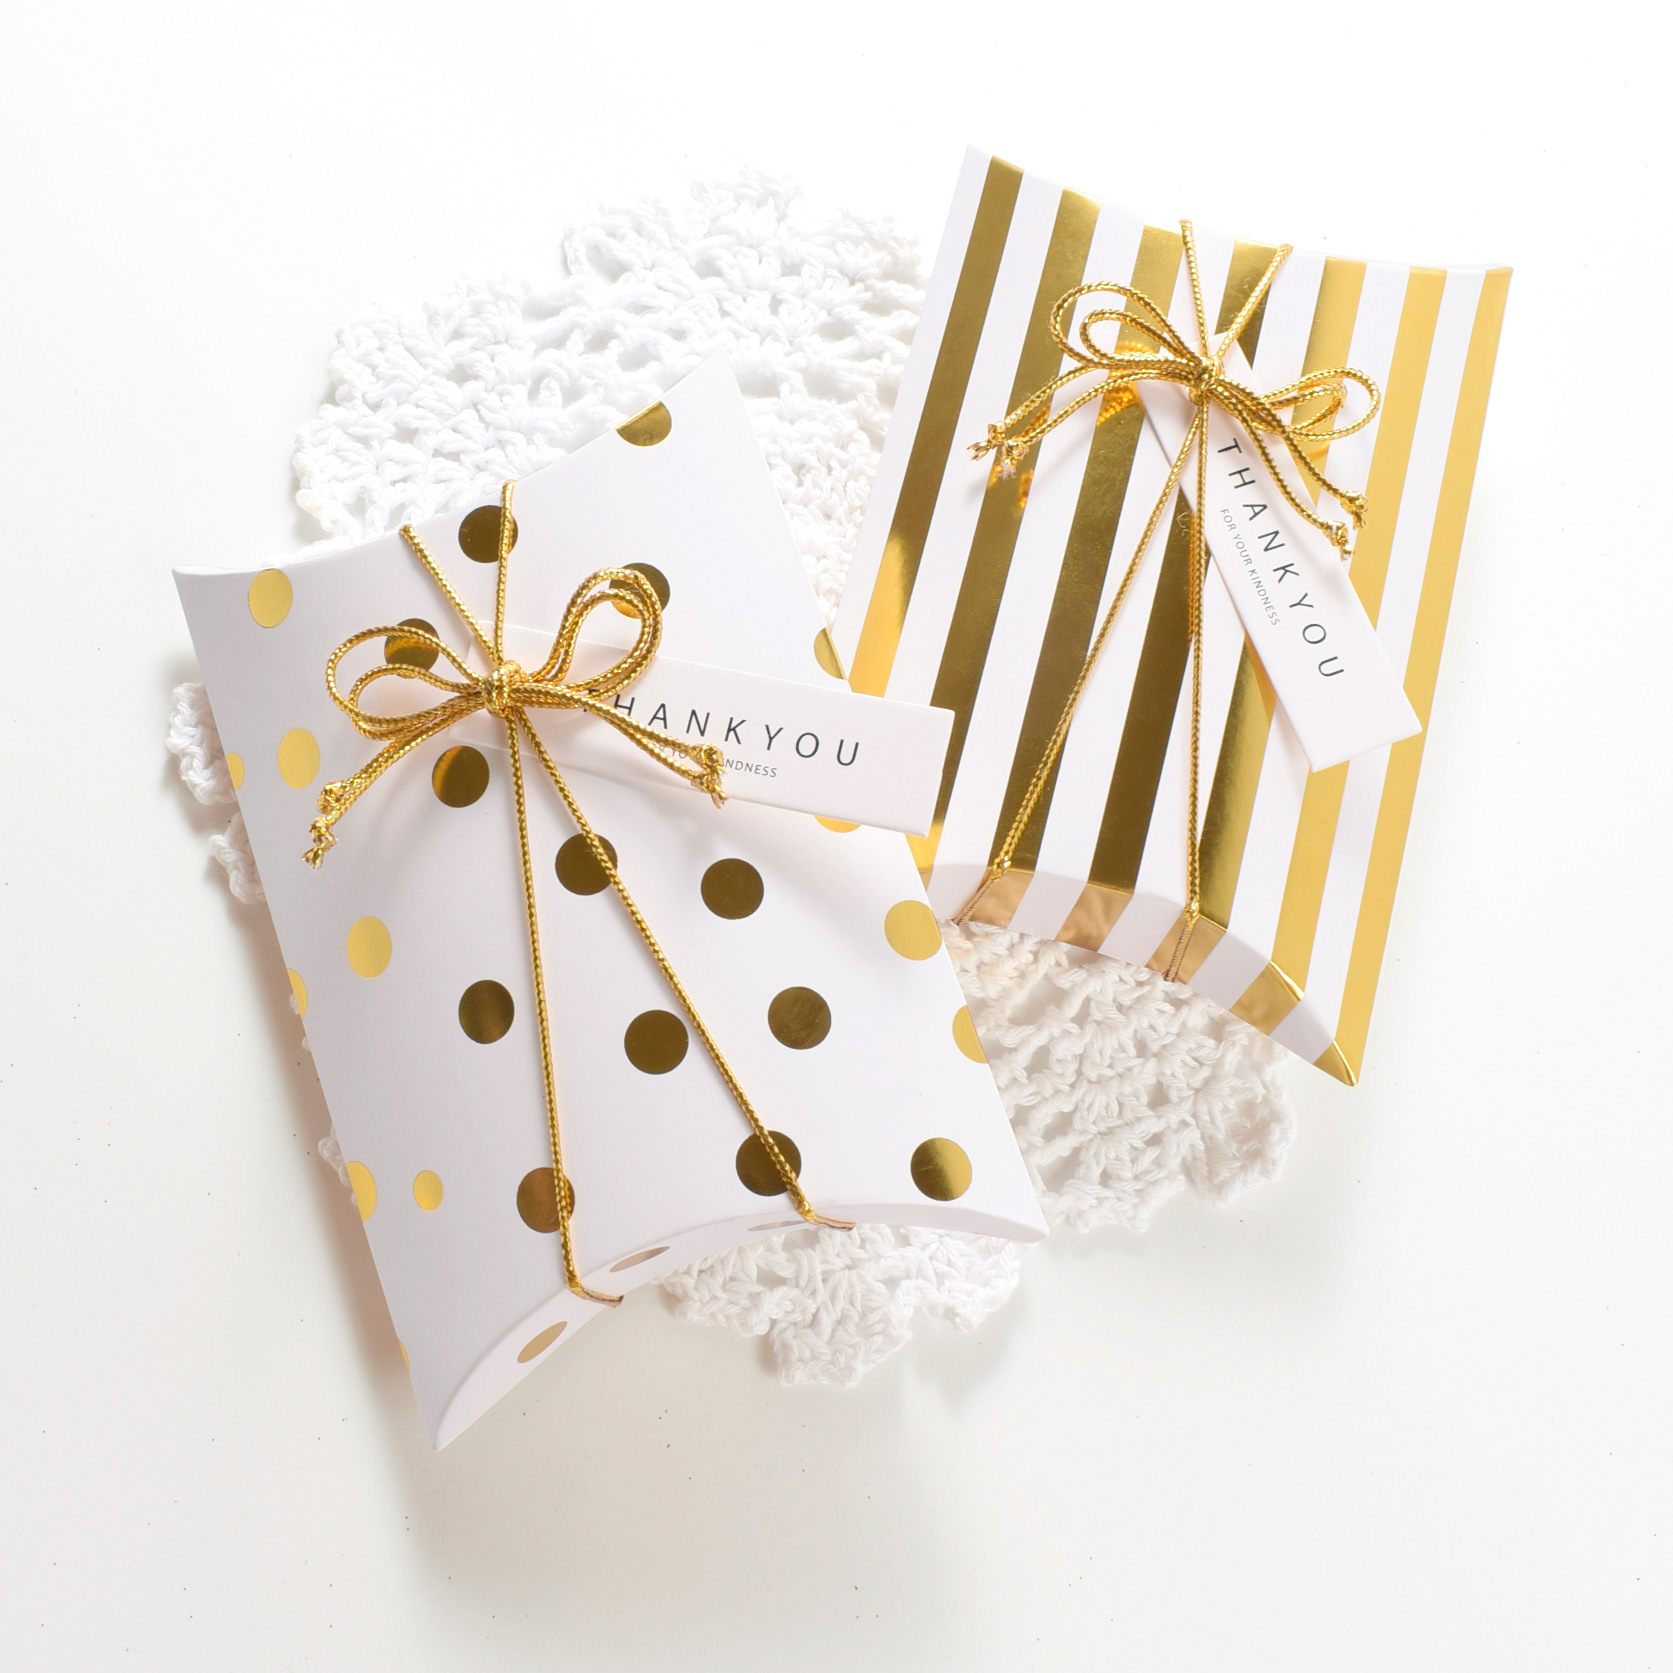 Free Printable Gift Box Templates - Pillow Box and Others   1673x1673